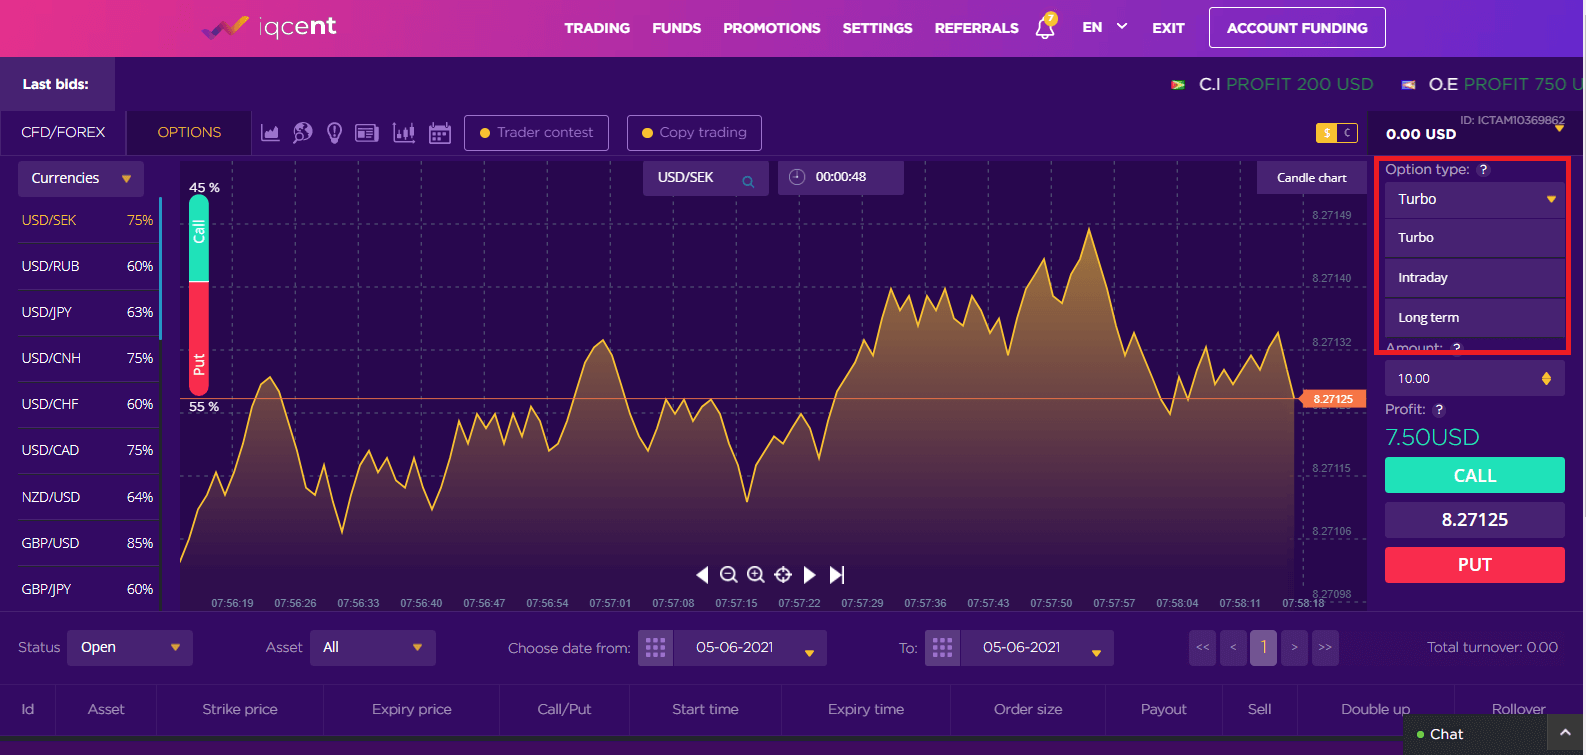 How to Trade at IQcent for Beginners